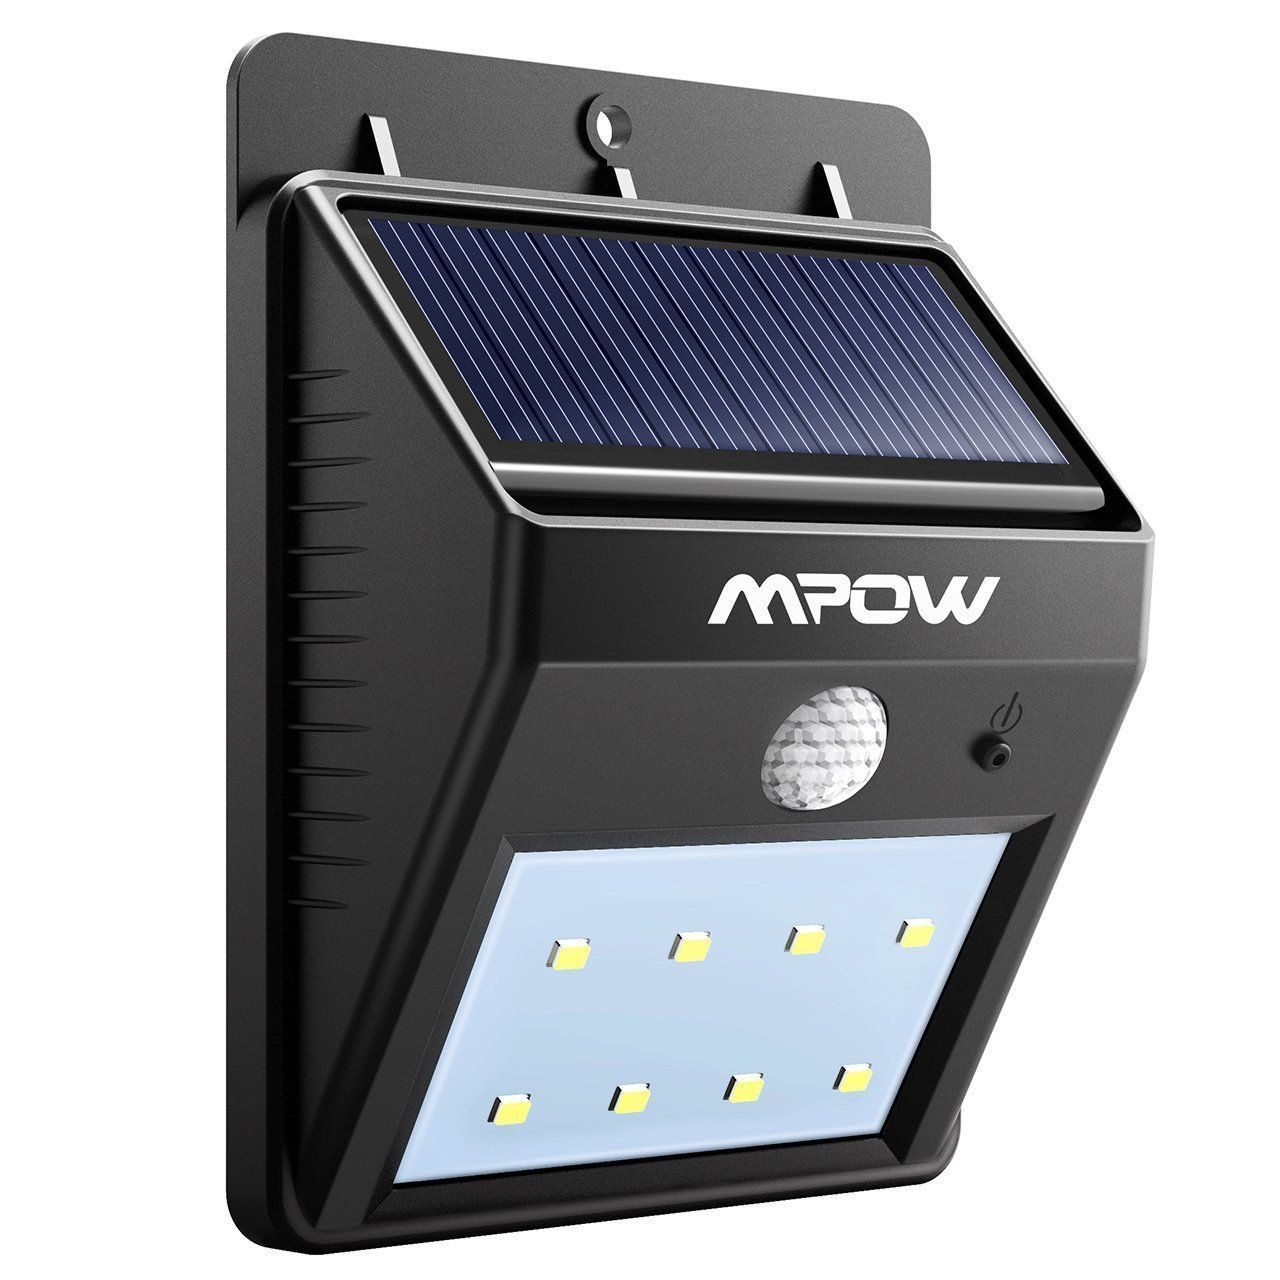 Mpow Terrace Wireless Motion Sensor Light With 3 Modes Waterproof 8 LED  Outdoor Lighting, Intelligent